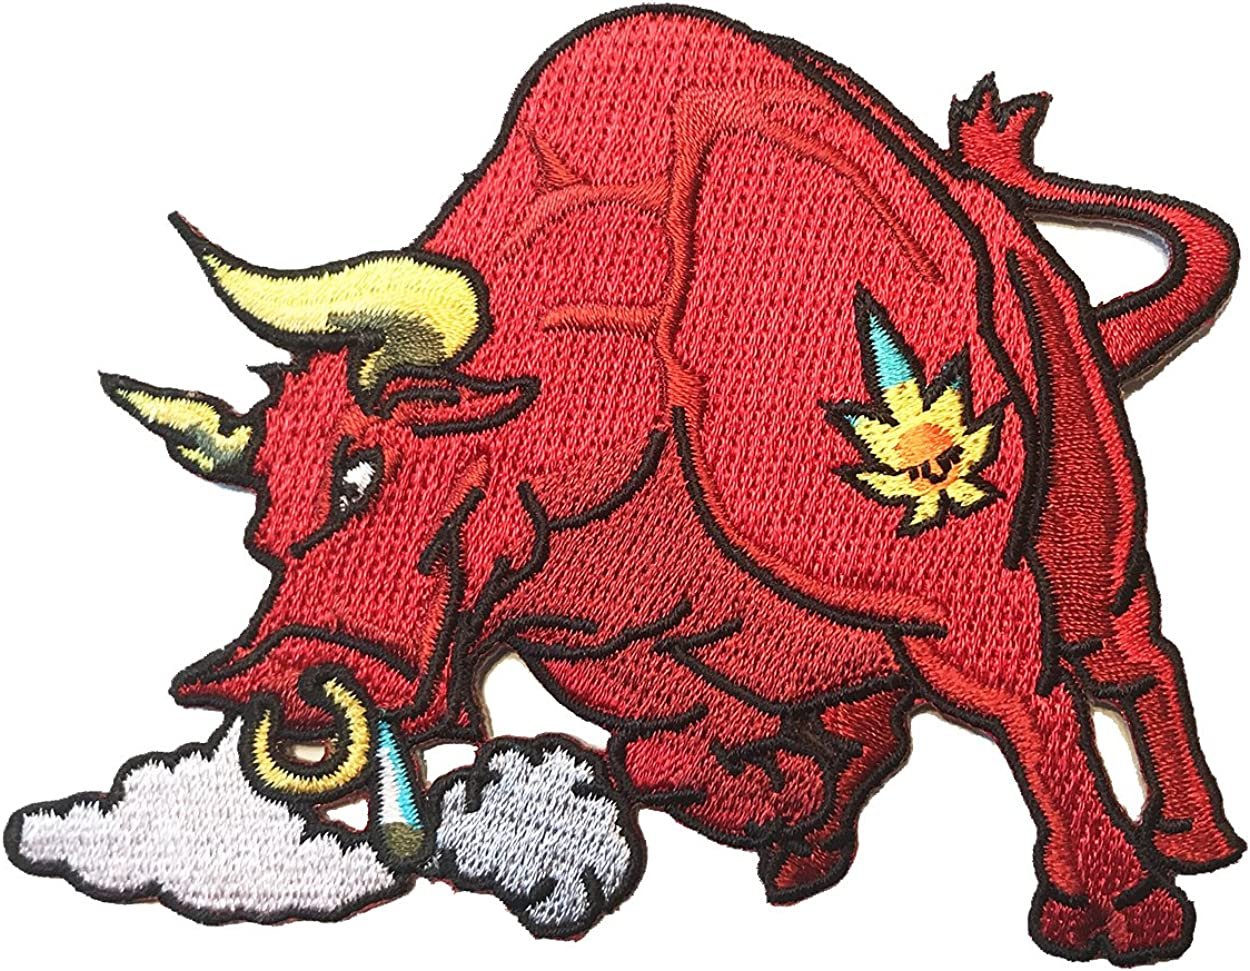 Pot Smoking Pals Raging Bull w/Horns & Bull Nose Ring - Iron On Patch Applique